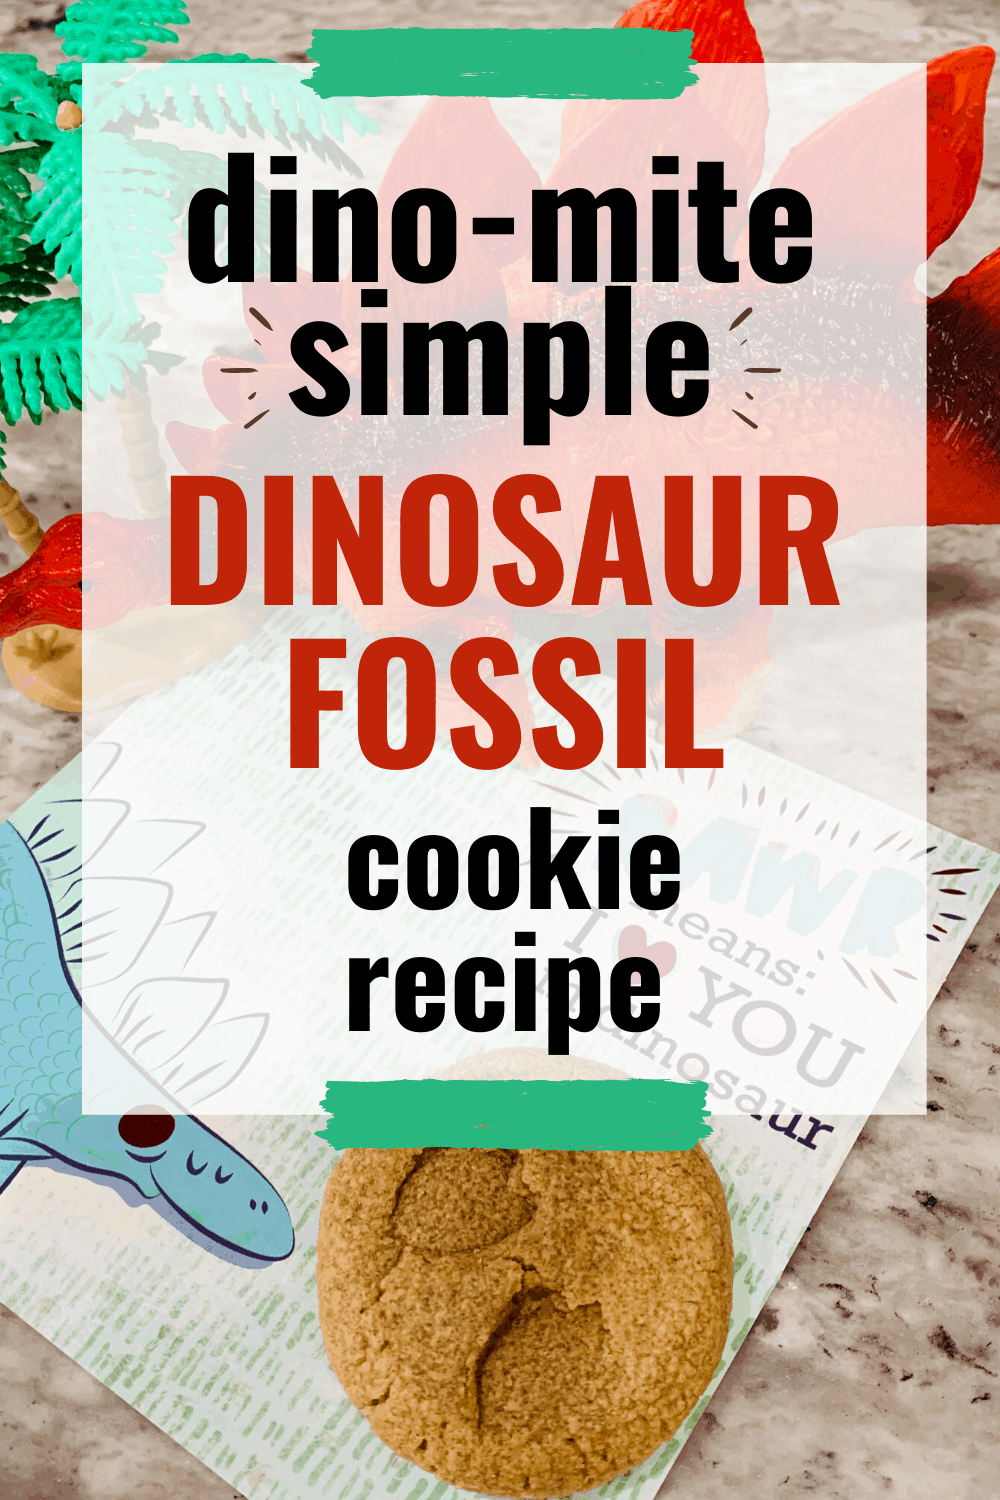 You won't believe how easy it is to mix up a batch of dinosaur cookie fossils with your preschooler! They'll love this dino-mite snack idea!